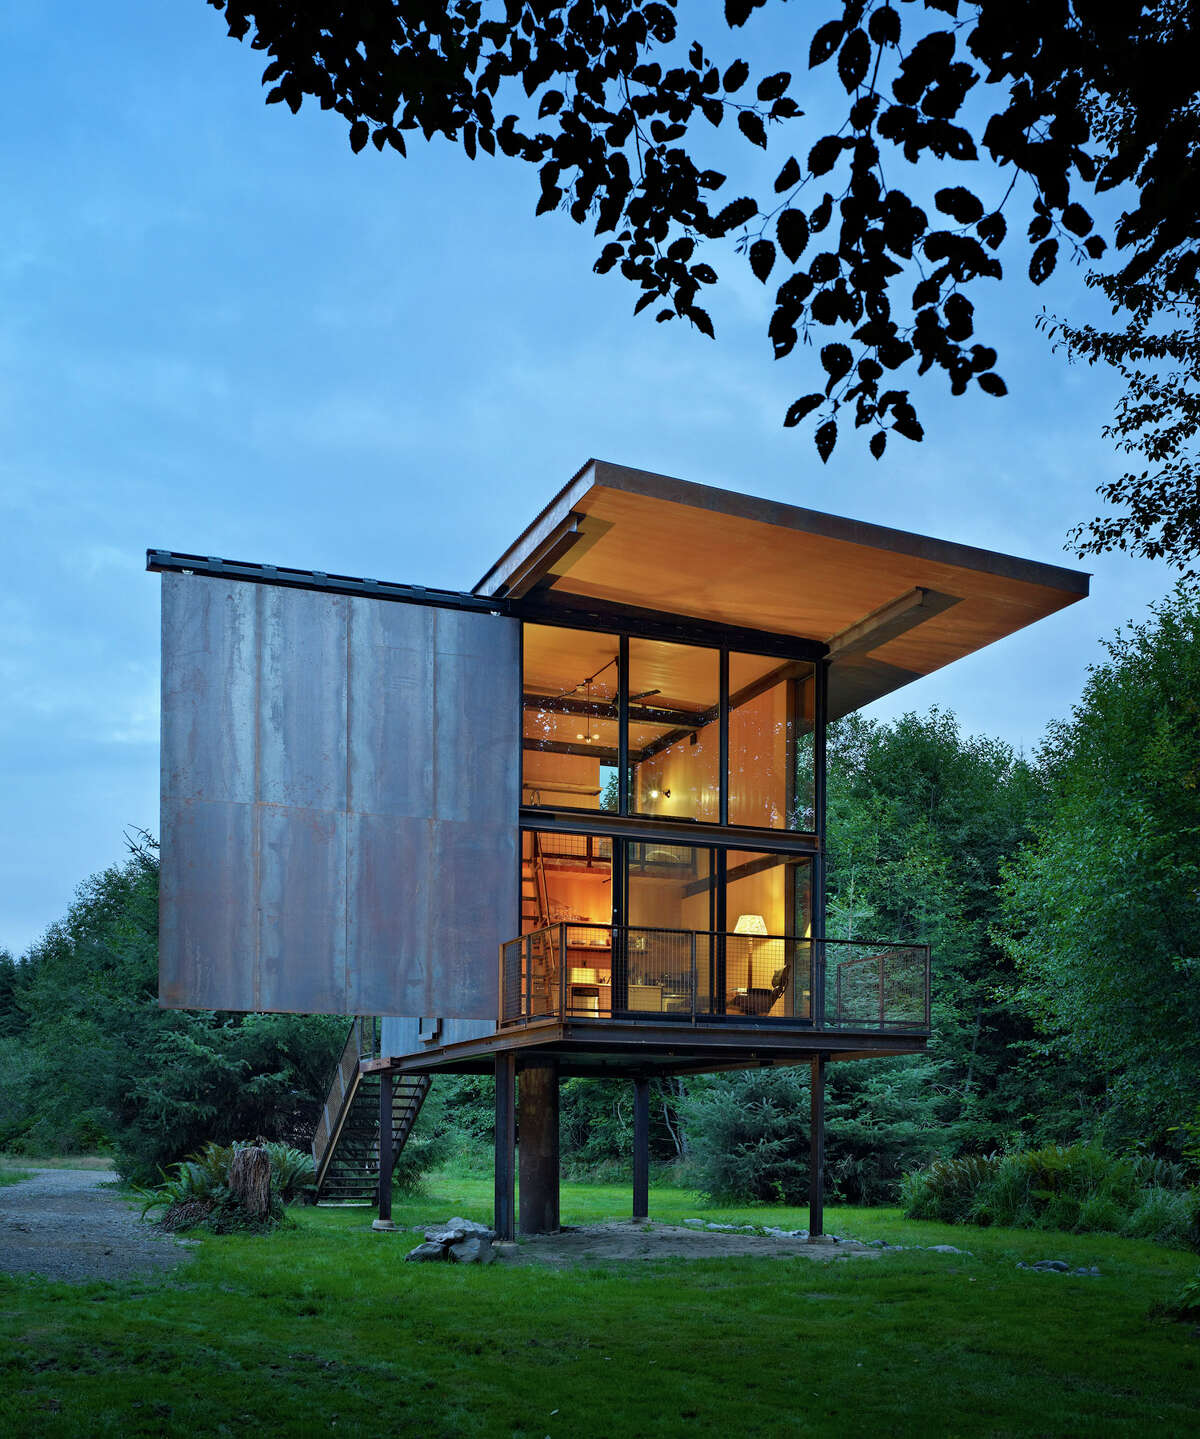 Tom Kundig, of Seattle's Olson Kundig Architects, won for Sol Duc Cabin, on the Olympic Peninsula.Jury comments: